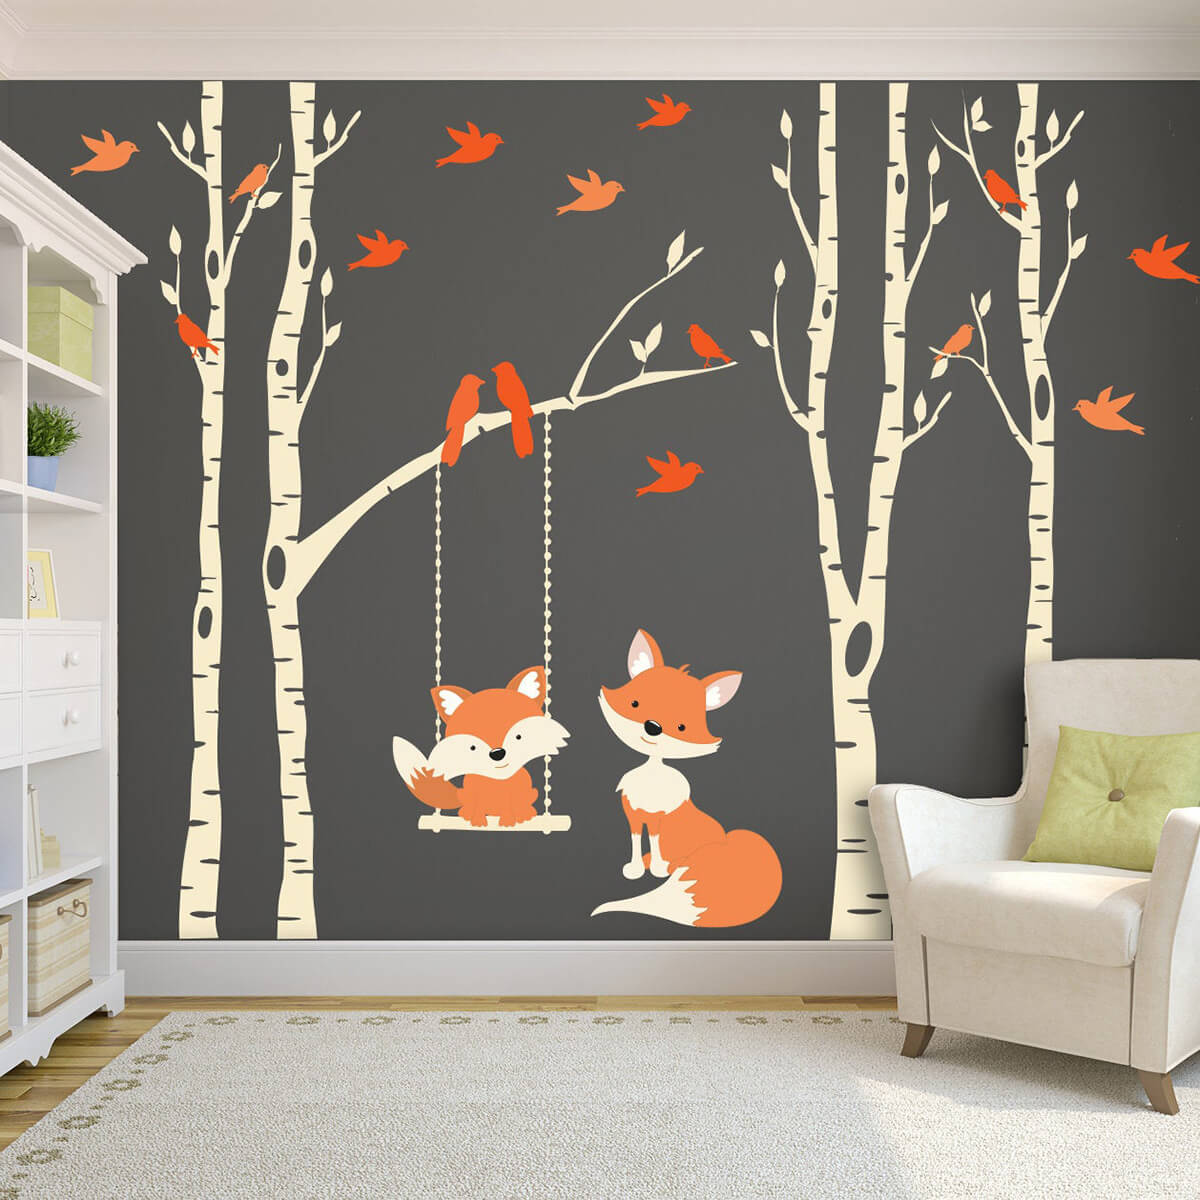 Swinging Fox with Birds on Birches Wall Mural Artwork